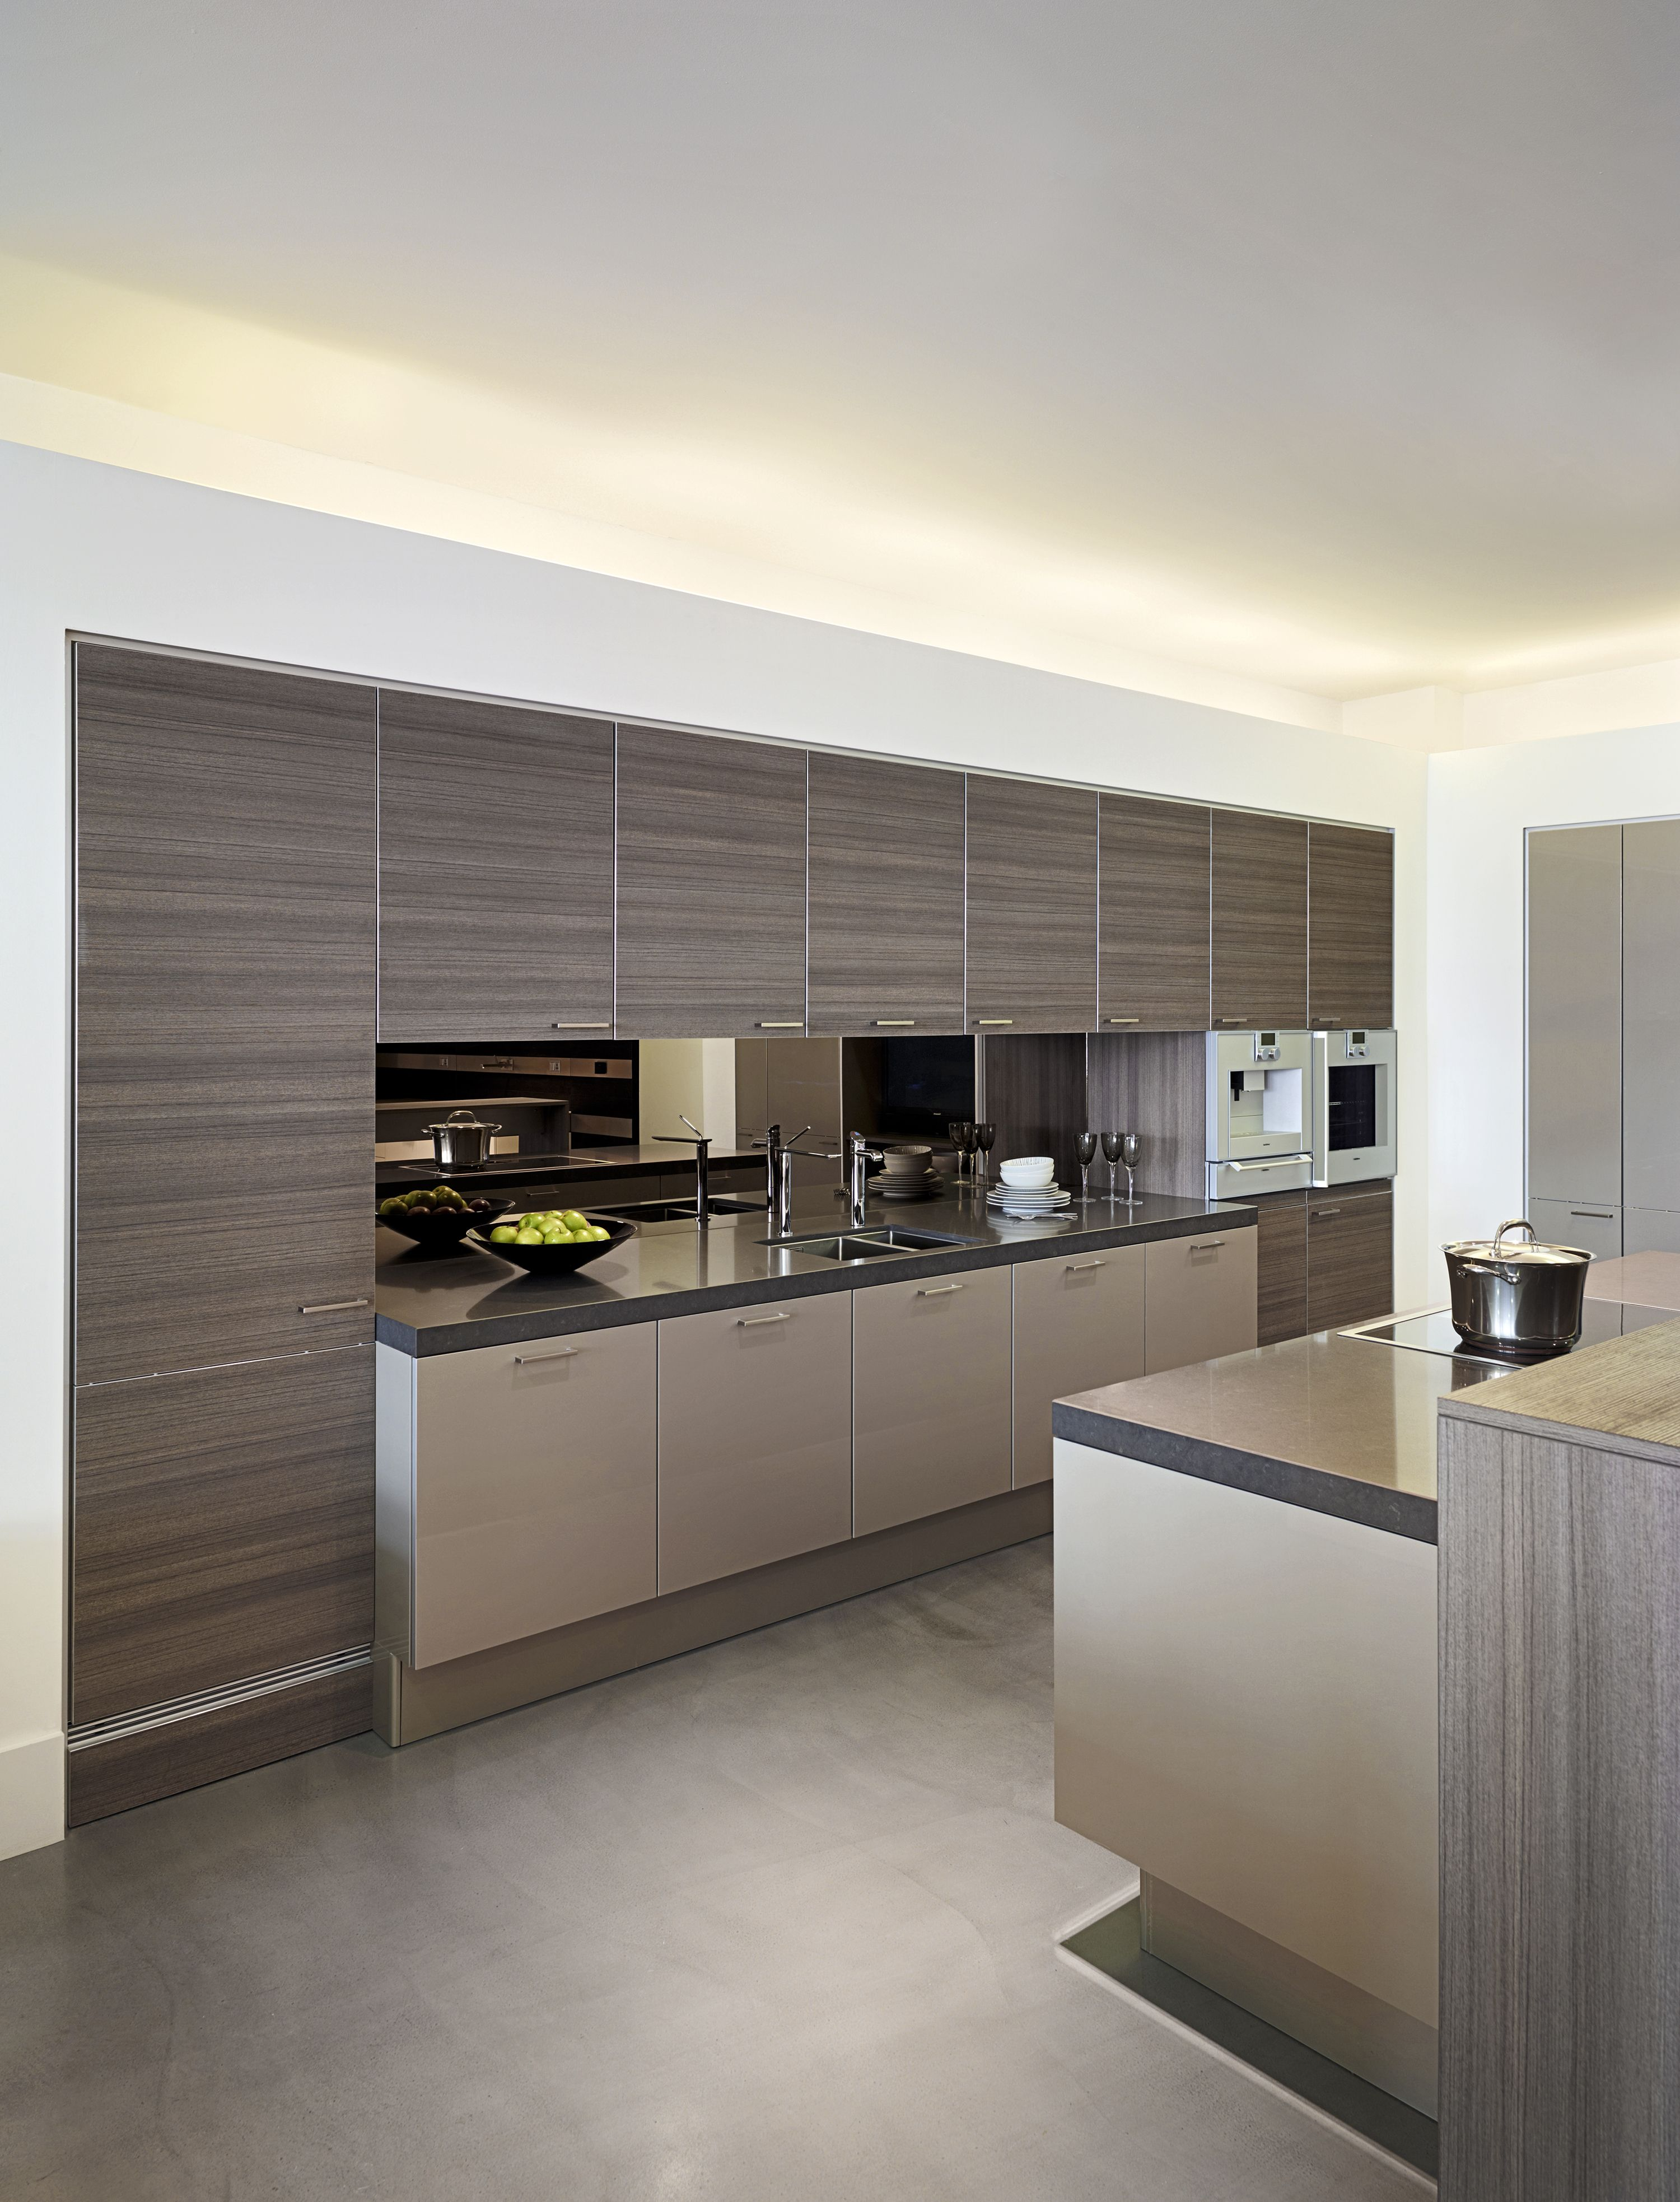 Think Clean Lines Precision Manufacturing And Inspiring Ethical Ethos Poggenpohl Continuosly Creates Beautifu Kitchen Interior Clean Kitchen Cabinets Kitchen